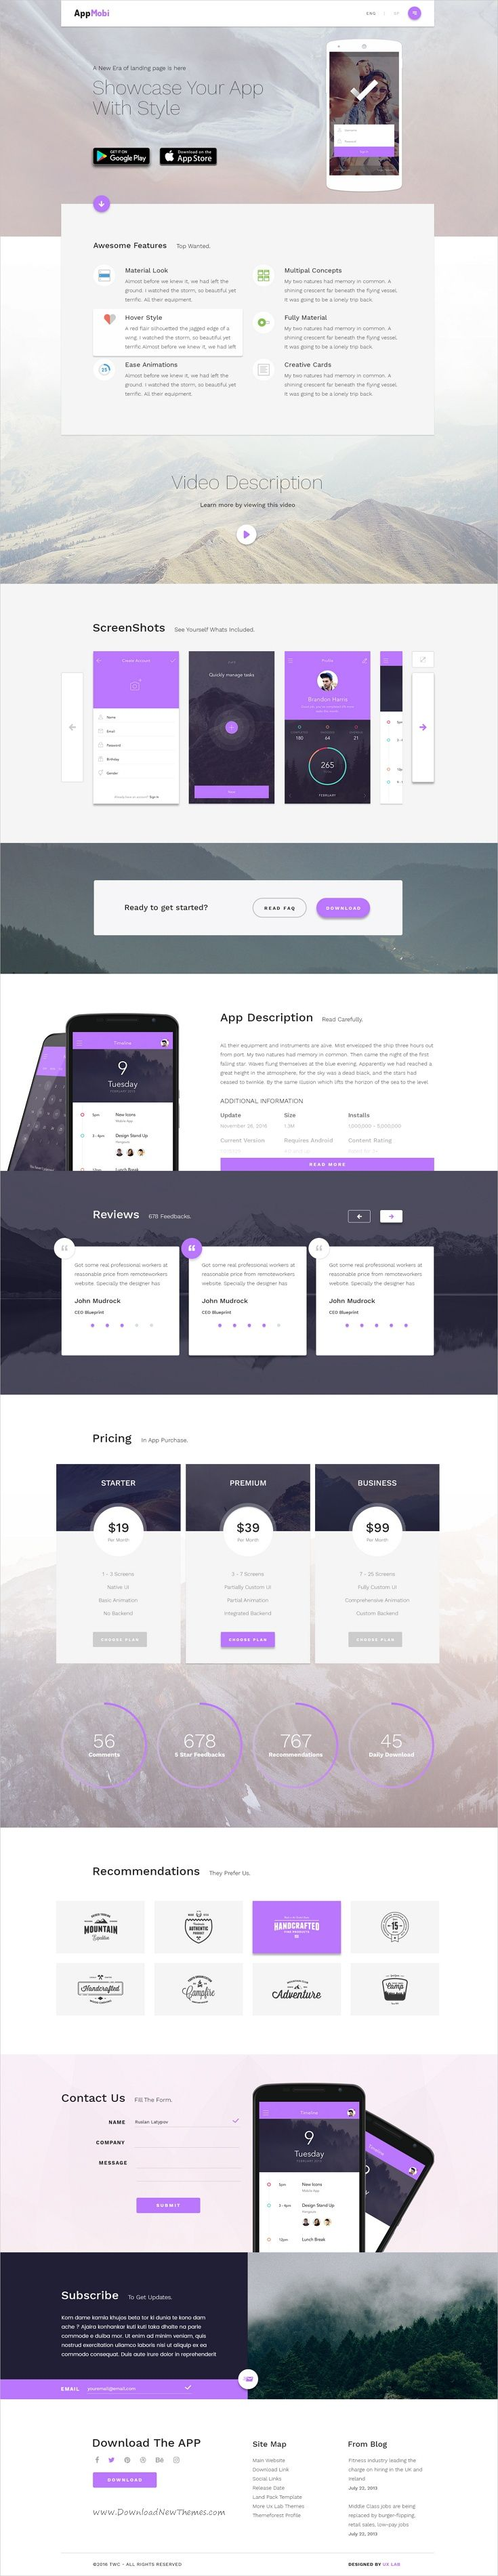 AppMobi is the perfect #Adobe #Muse template for promoting your #app or #software presentation website download now➩ https://themeforest.net/item/appmobiperfect-presentation-websitelandingpage-for-your-app-or-software/19520100?ref=Datasata